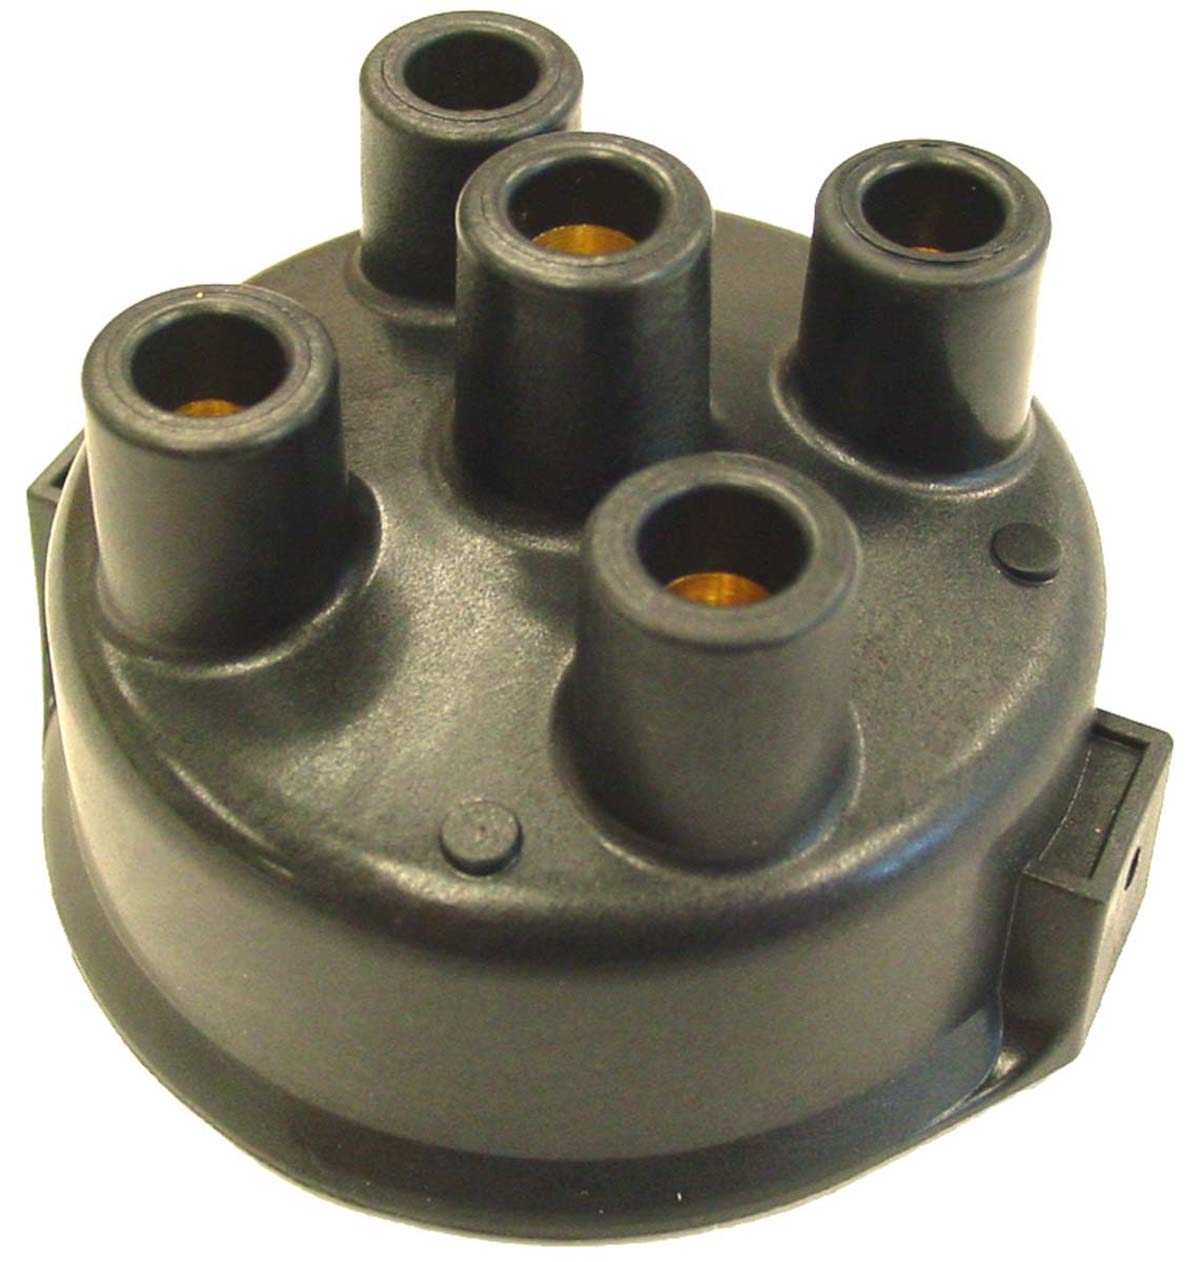 Delco style distributor cap for 4 cylinder tractors. Includes Oliver models: SUPER 44, 440, 60, SUPER 55, 550, 66, SUPER 66, 660, 70, 77, SUPER 77, 770, 88, 880, 90, 99, 1600, 1800 (UP TO SN 124395), H6, OC3 --- DELCO REMY DISTRIBUTORS MUST HAVE CLIP HELD CAP THRU 1963